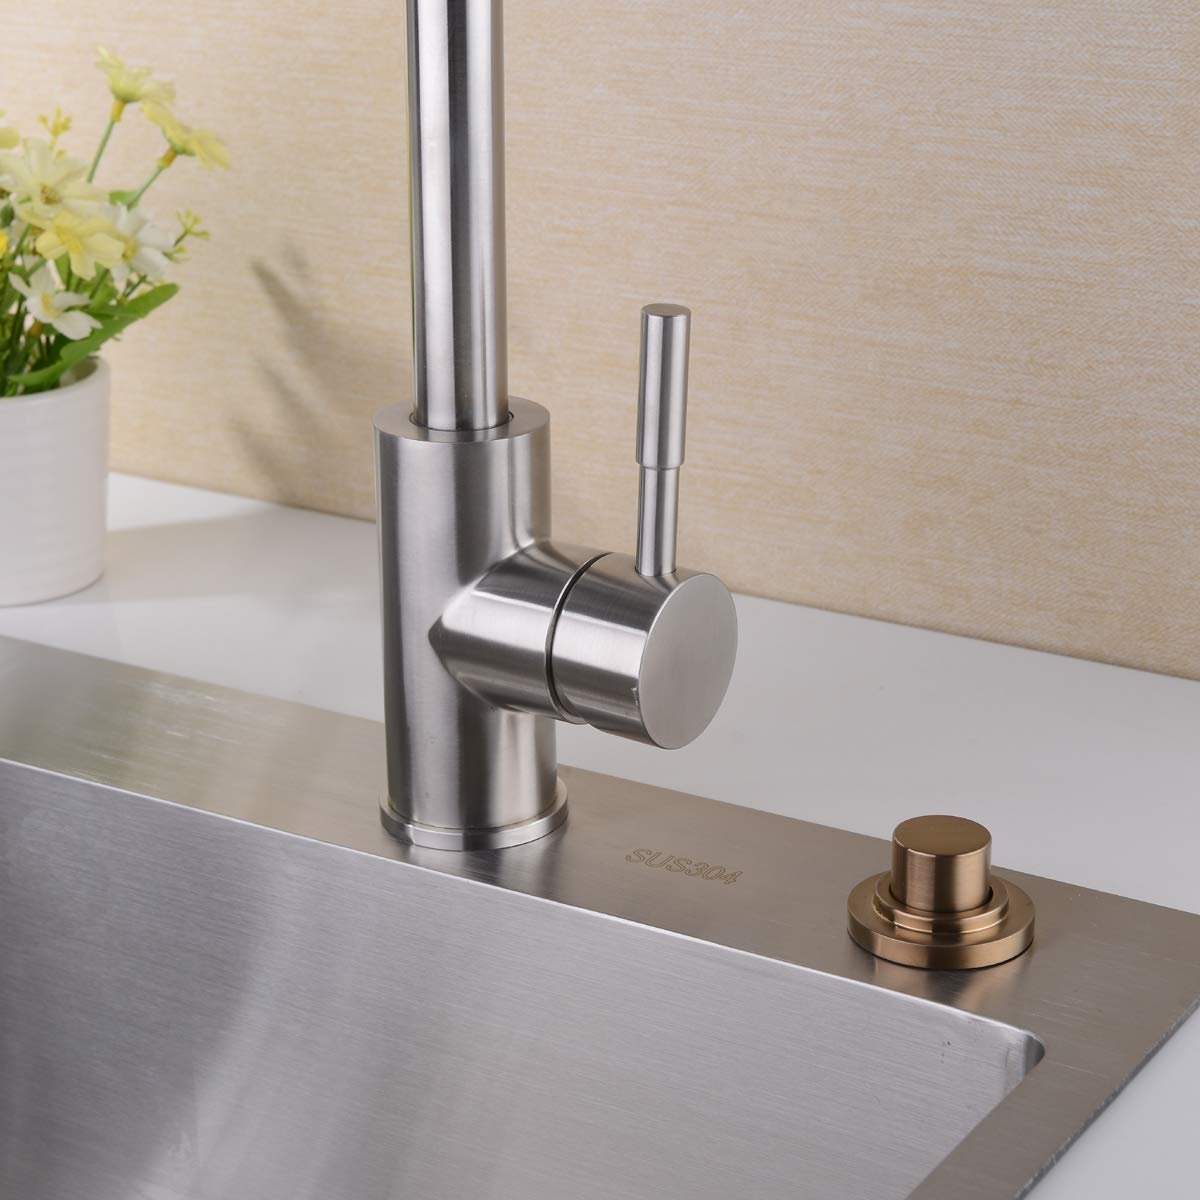 for Disposal Dual Outlet, Full Brass SINKINGDOM SinkTop Air Switch Kit Chrome